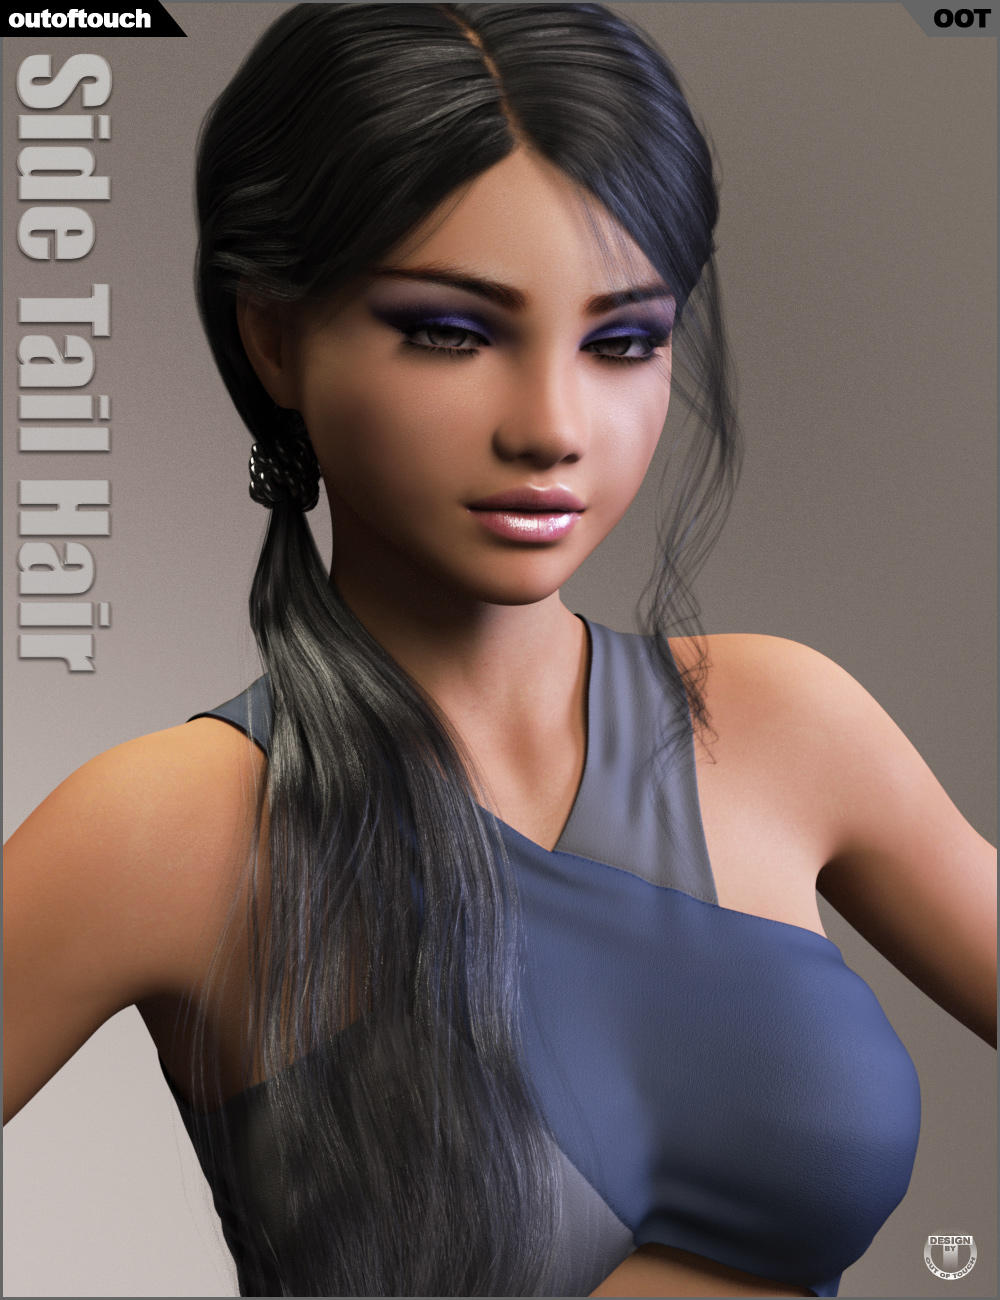 Side Tail Hair by: outoftouch, 3D Models by Daz 3D